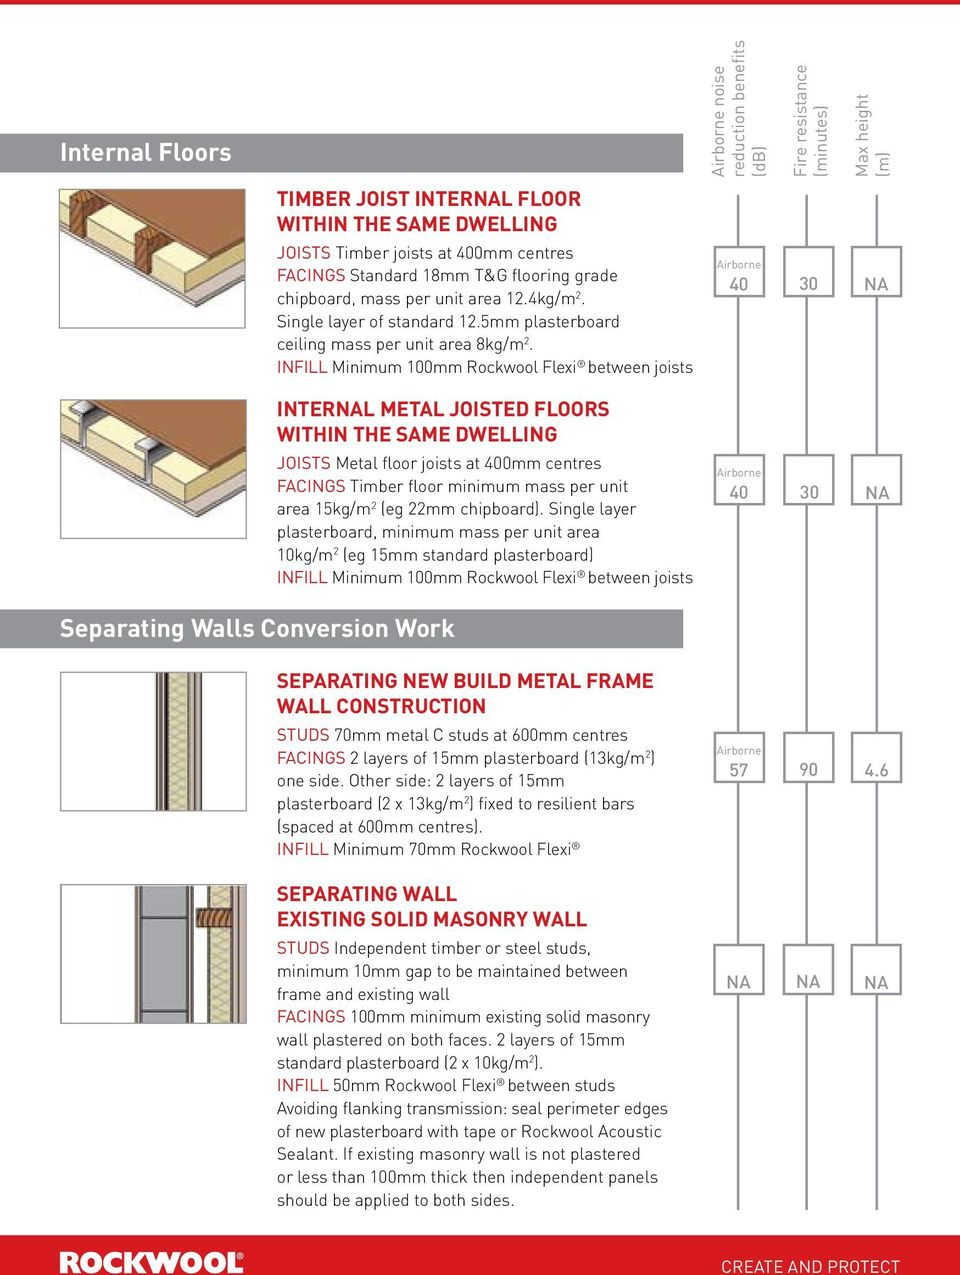 INFILL Minimum 100mm Rockwool Flexi between joists noise 40 30 Max height (m) NA Separating Walls Conversion Work INTERNAL METAL JOISTED FLOORS WITHIN THE SAME DWELLING joists Metal floor joists at